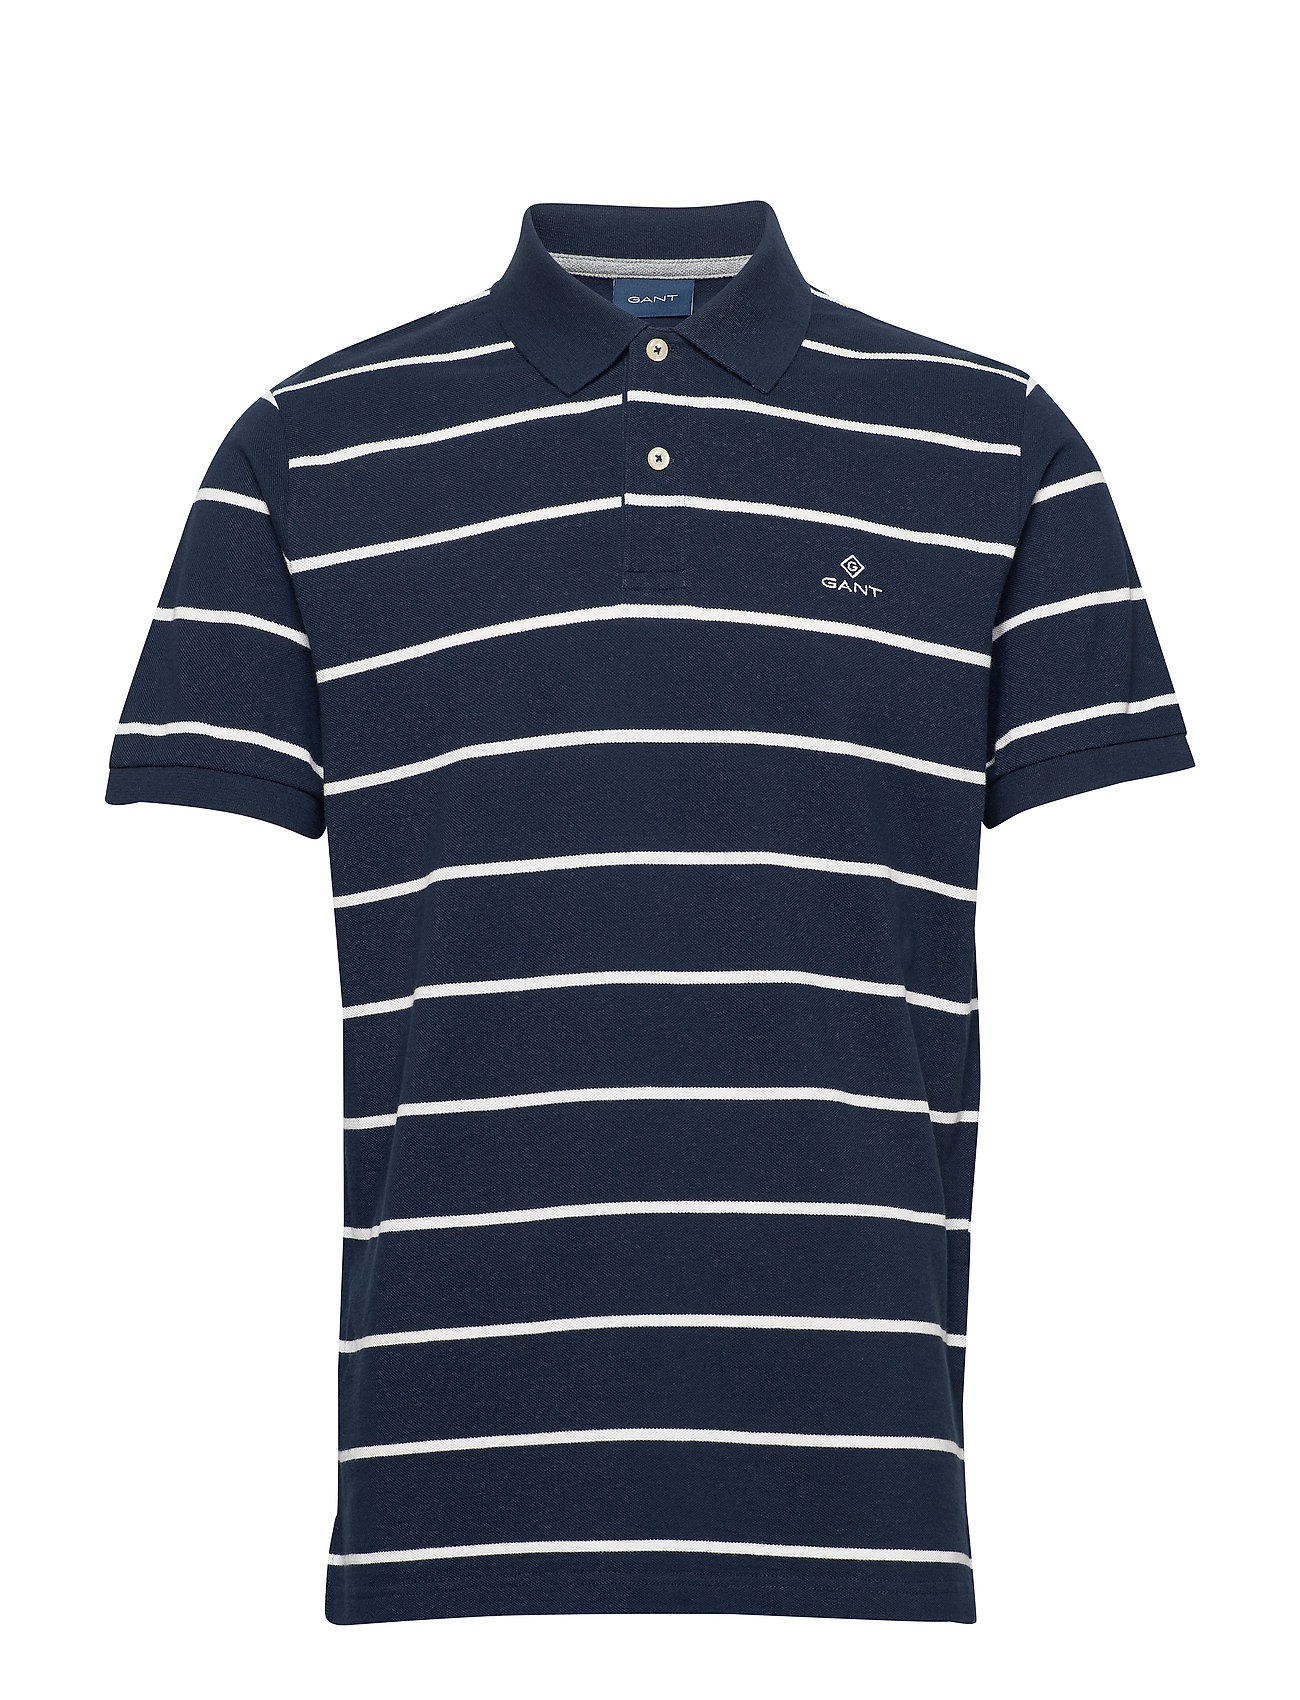 Gant BRETON STRIPE PIQUE SS RUGGER - EVENING BLUE